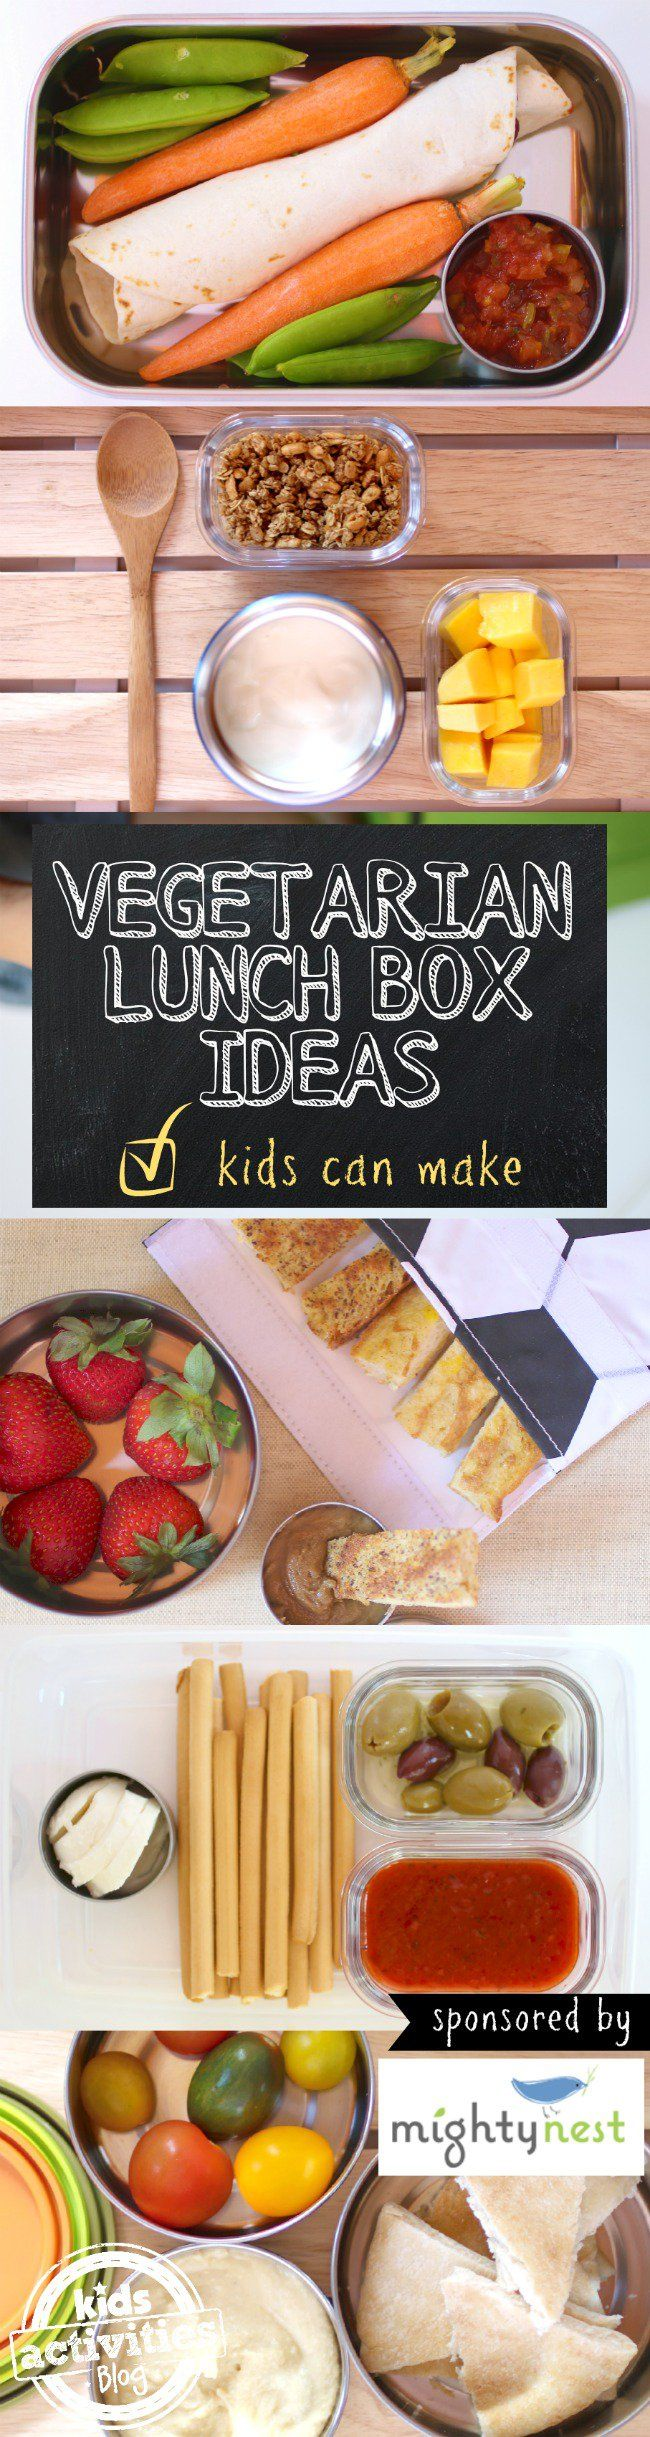 Vegetarian Lunch Box Ideas Kids Can Make - Kids Activities Blog